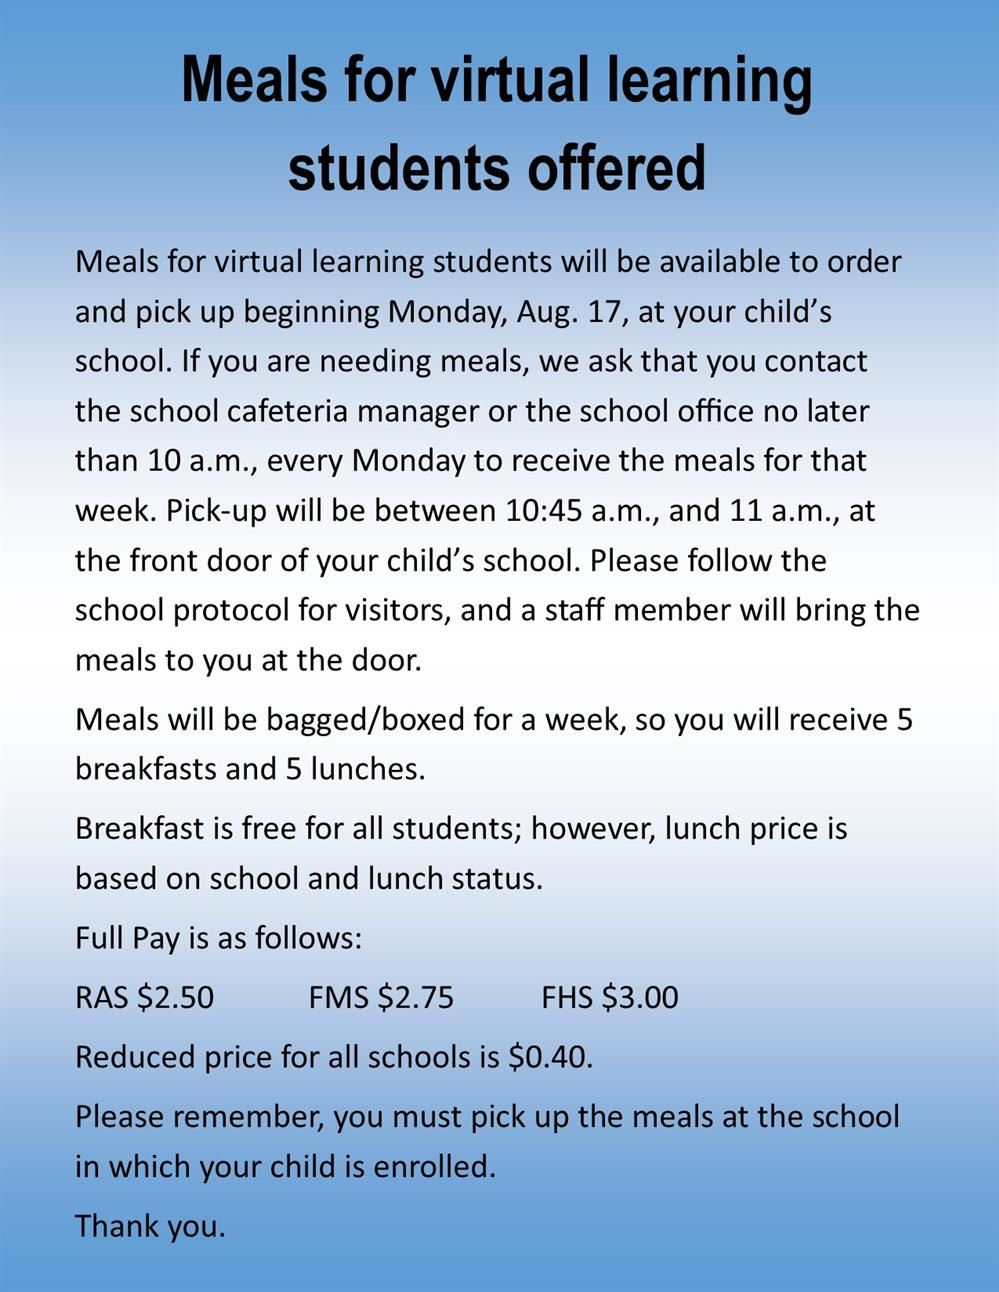 virtual learning meals flyer